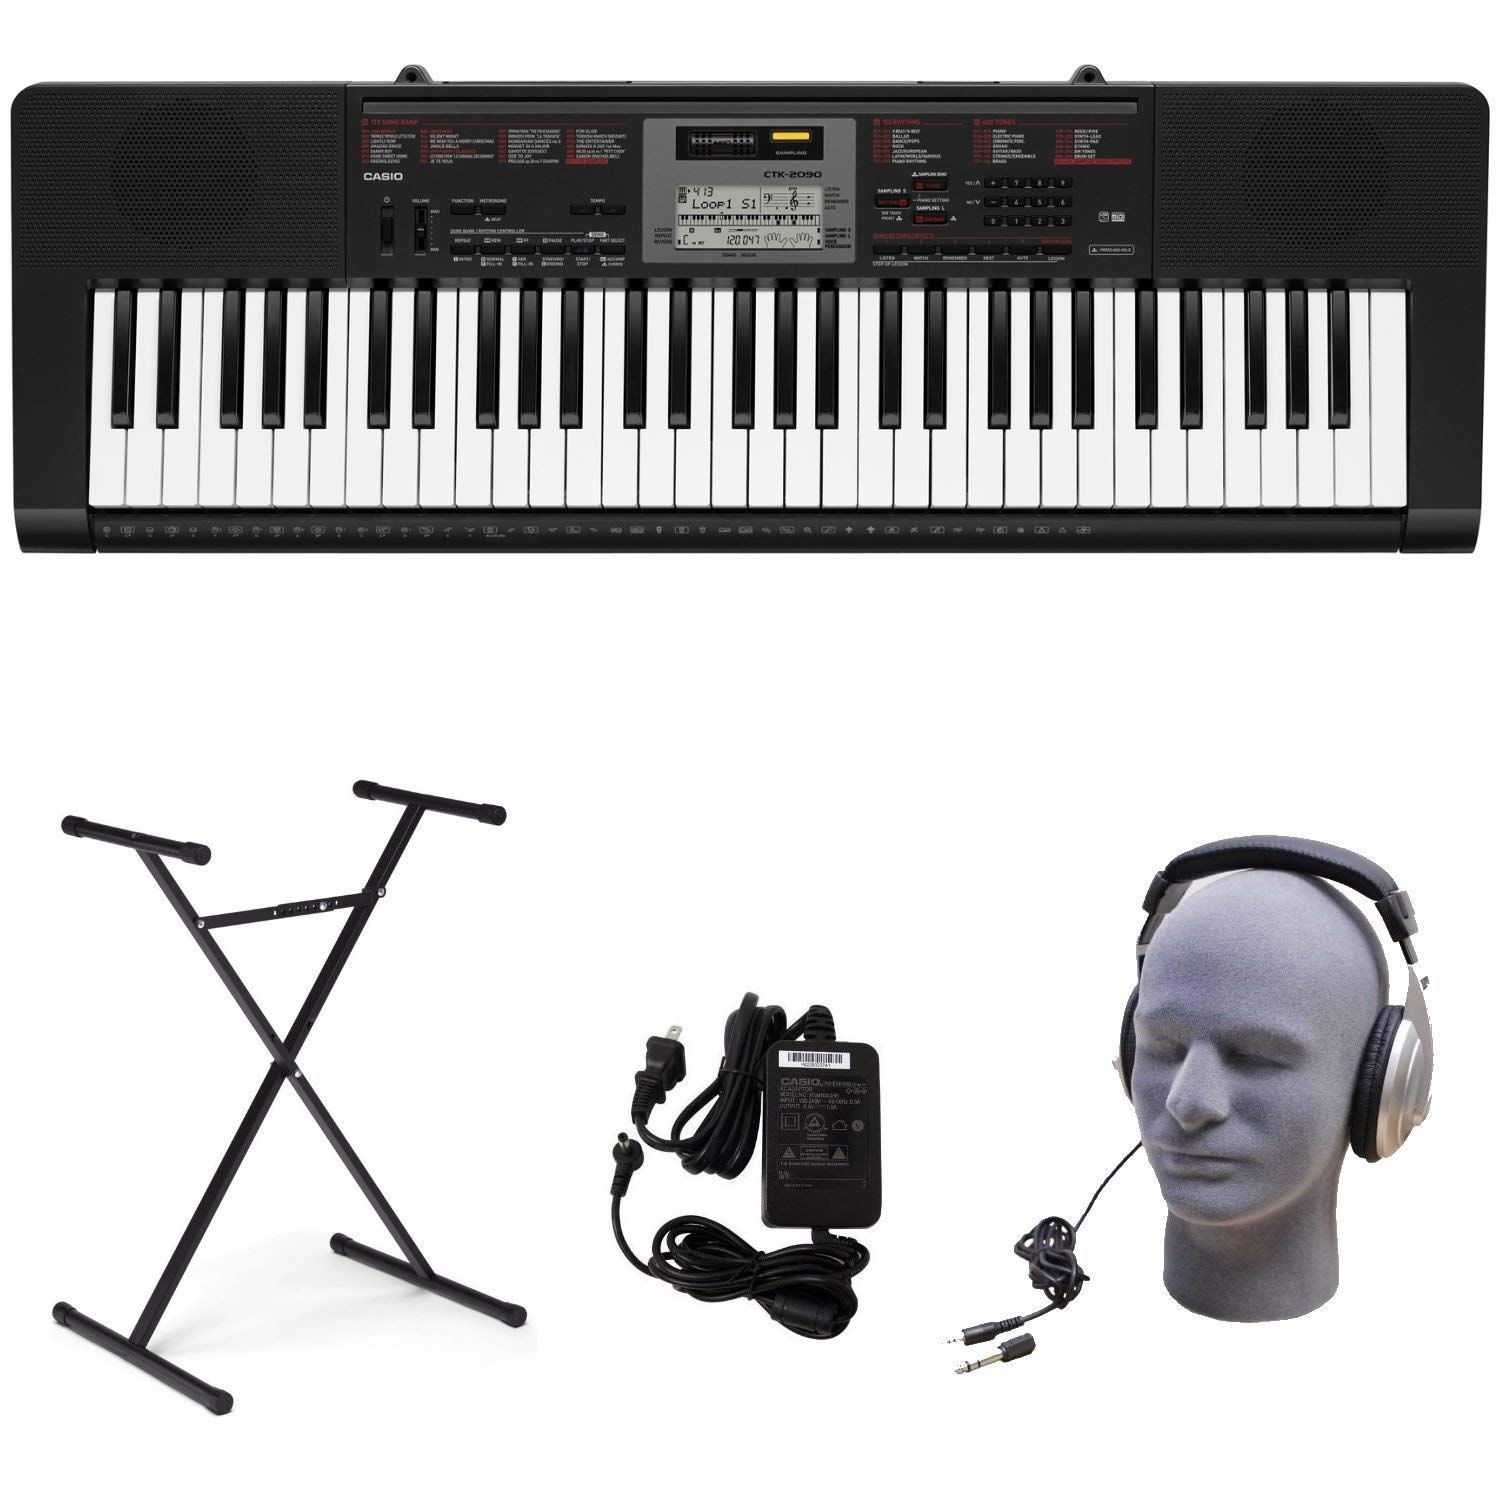 Casio CTK-2090 PPK 61-Key Premium Keyboard Pack with Power Supply, Stand, and Headphones